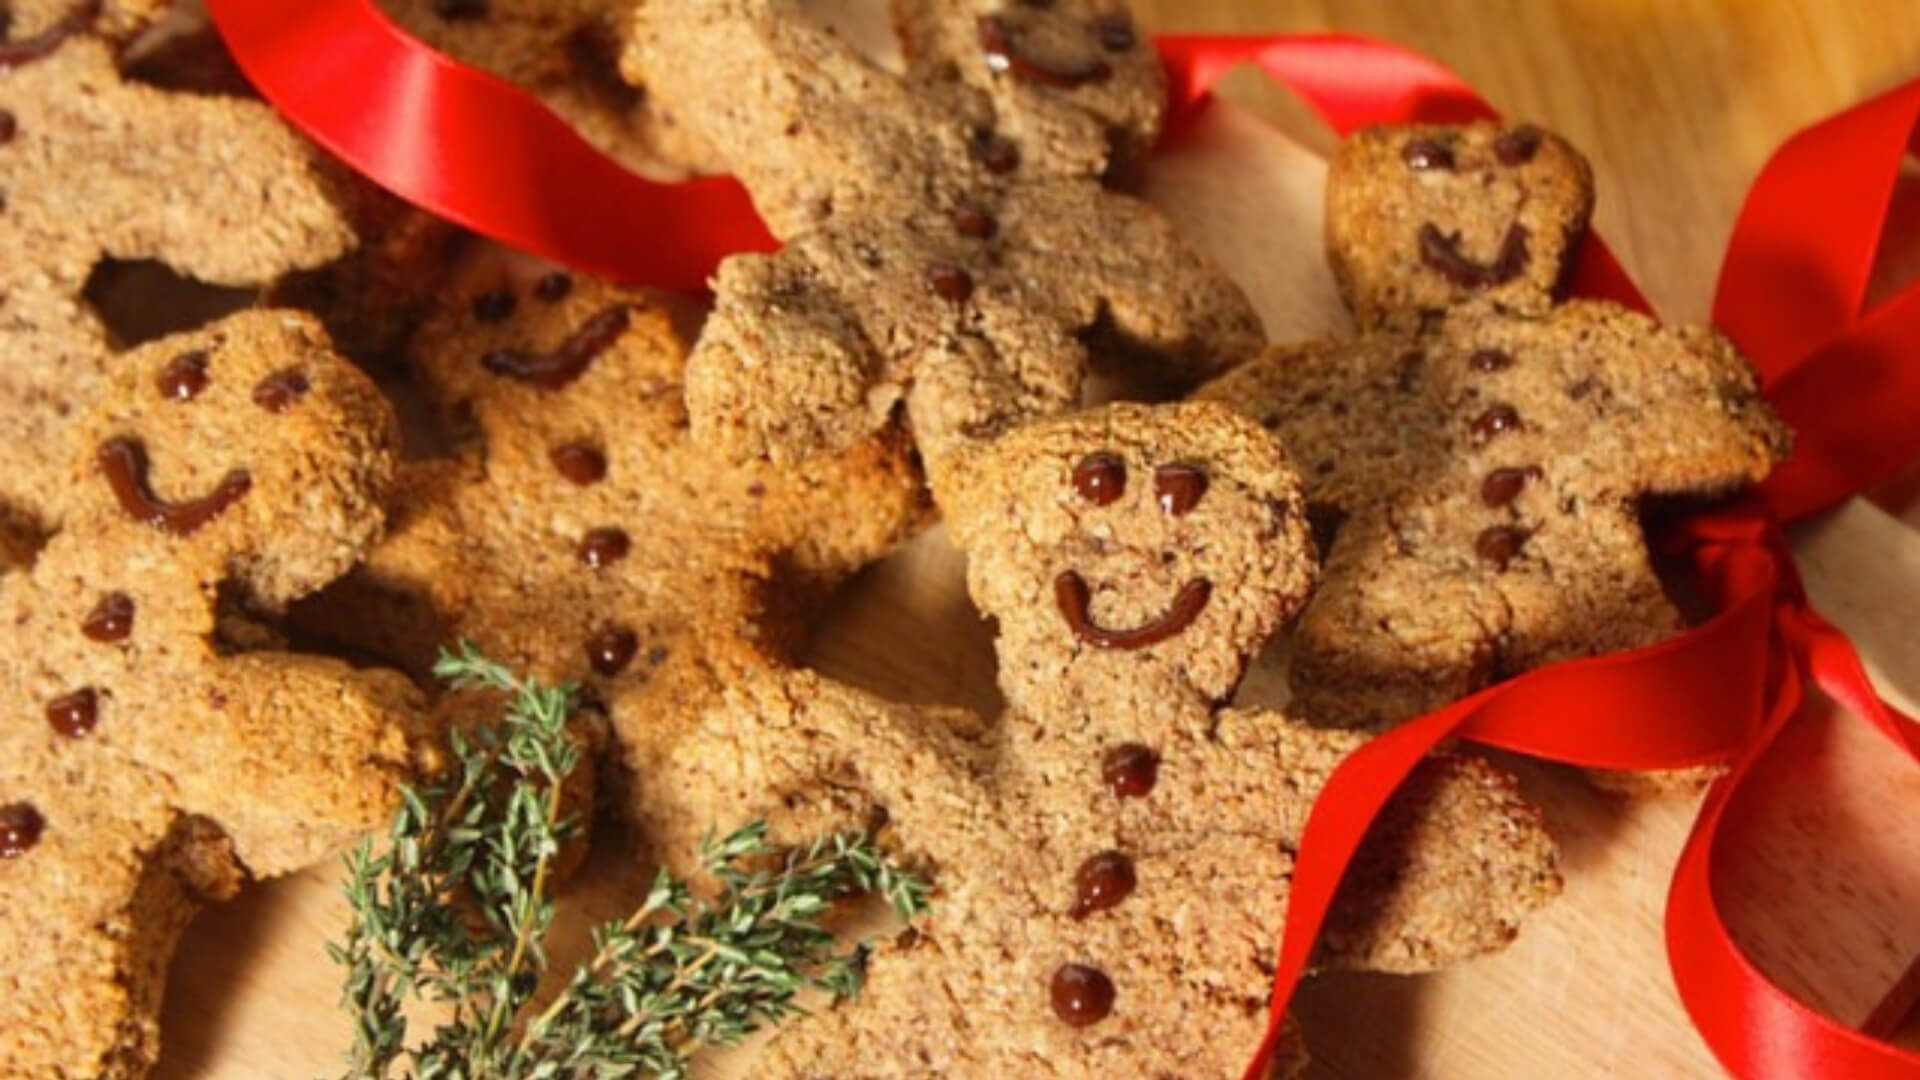 Three Wise Gingerbread Men